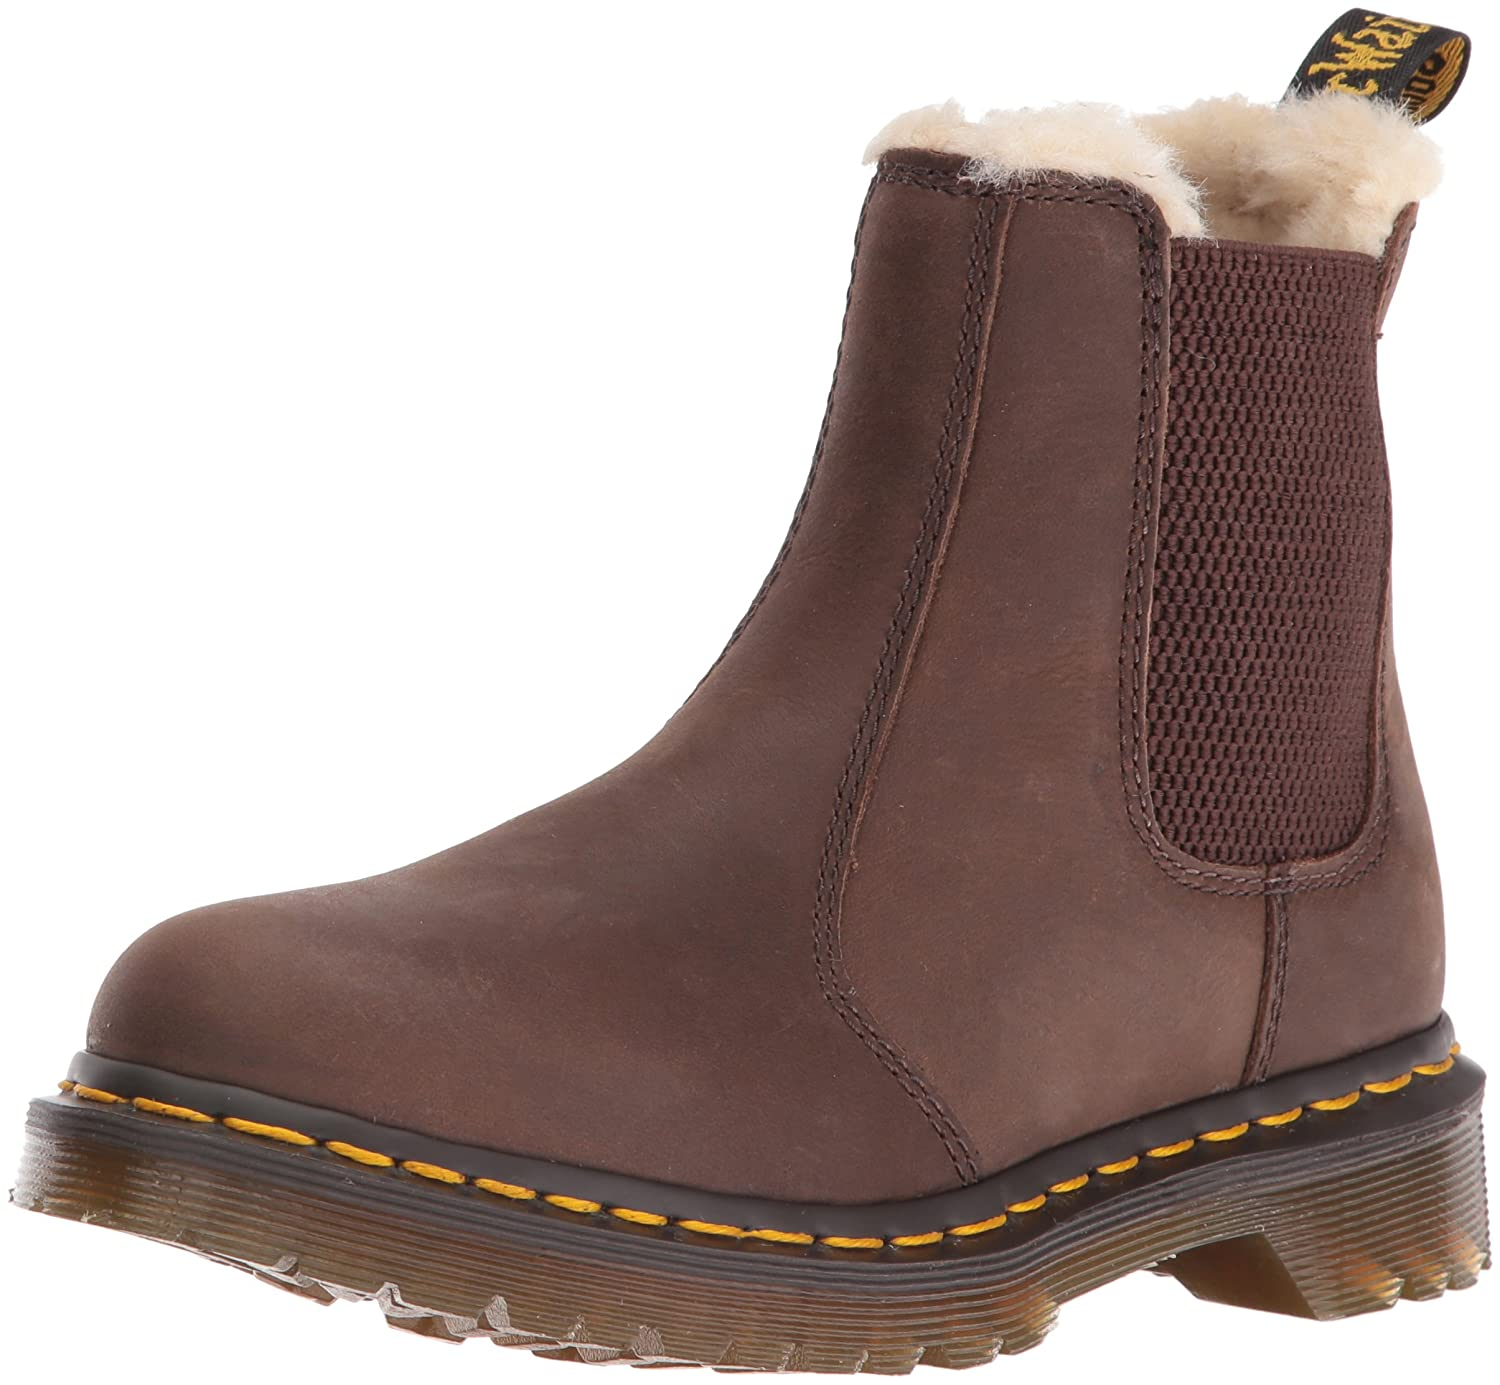 Dr. Martens Leonore Burnished Wyoming Leather Fashion Boot B01B271L7A 36 M EU|Dark Brown Grizzly